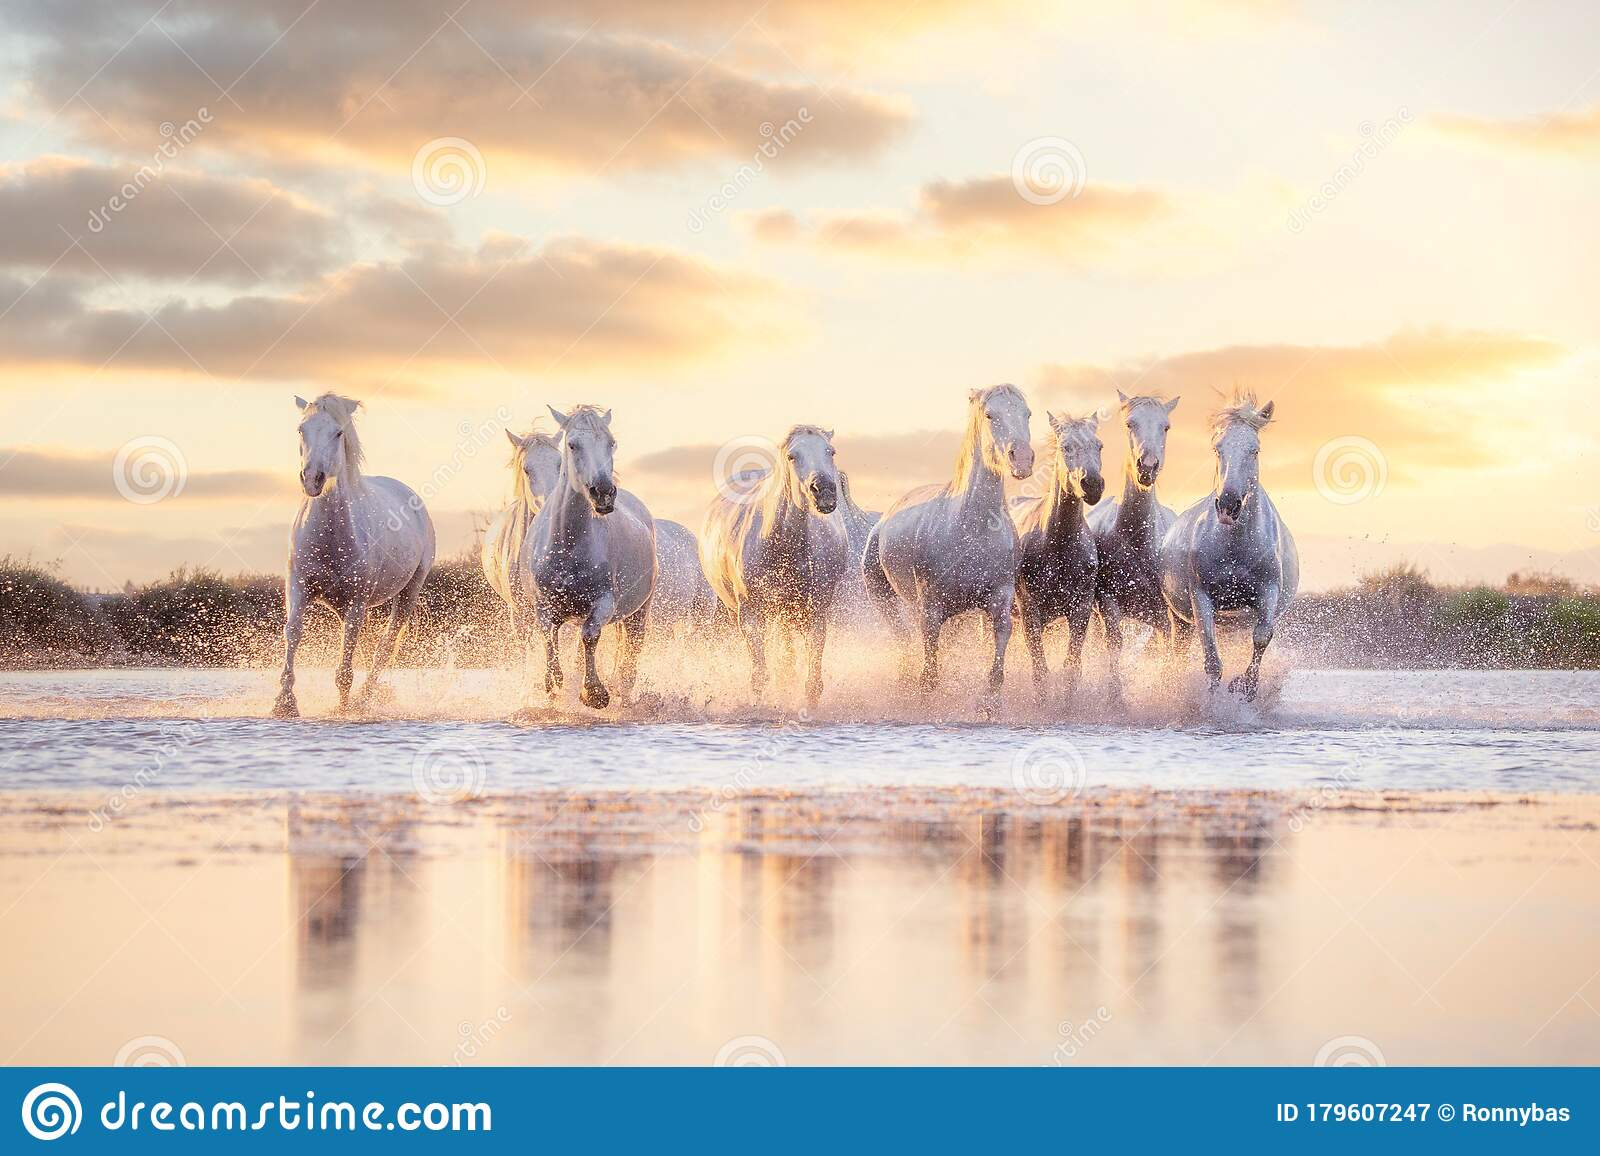 1 752 Wild Horses Running Sunset Photos Free Royalty Free Stock Photos From Dreamstime